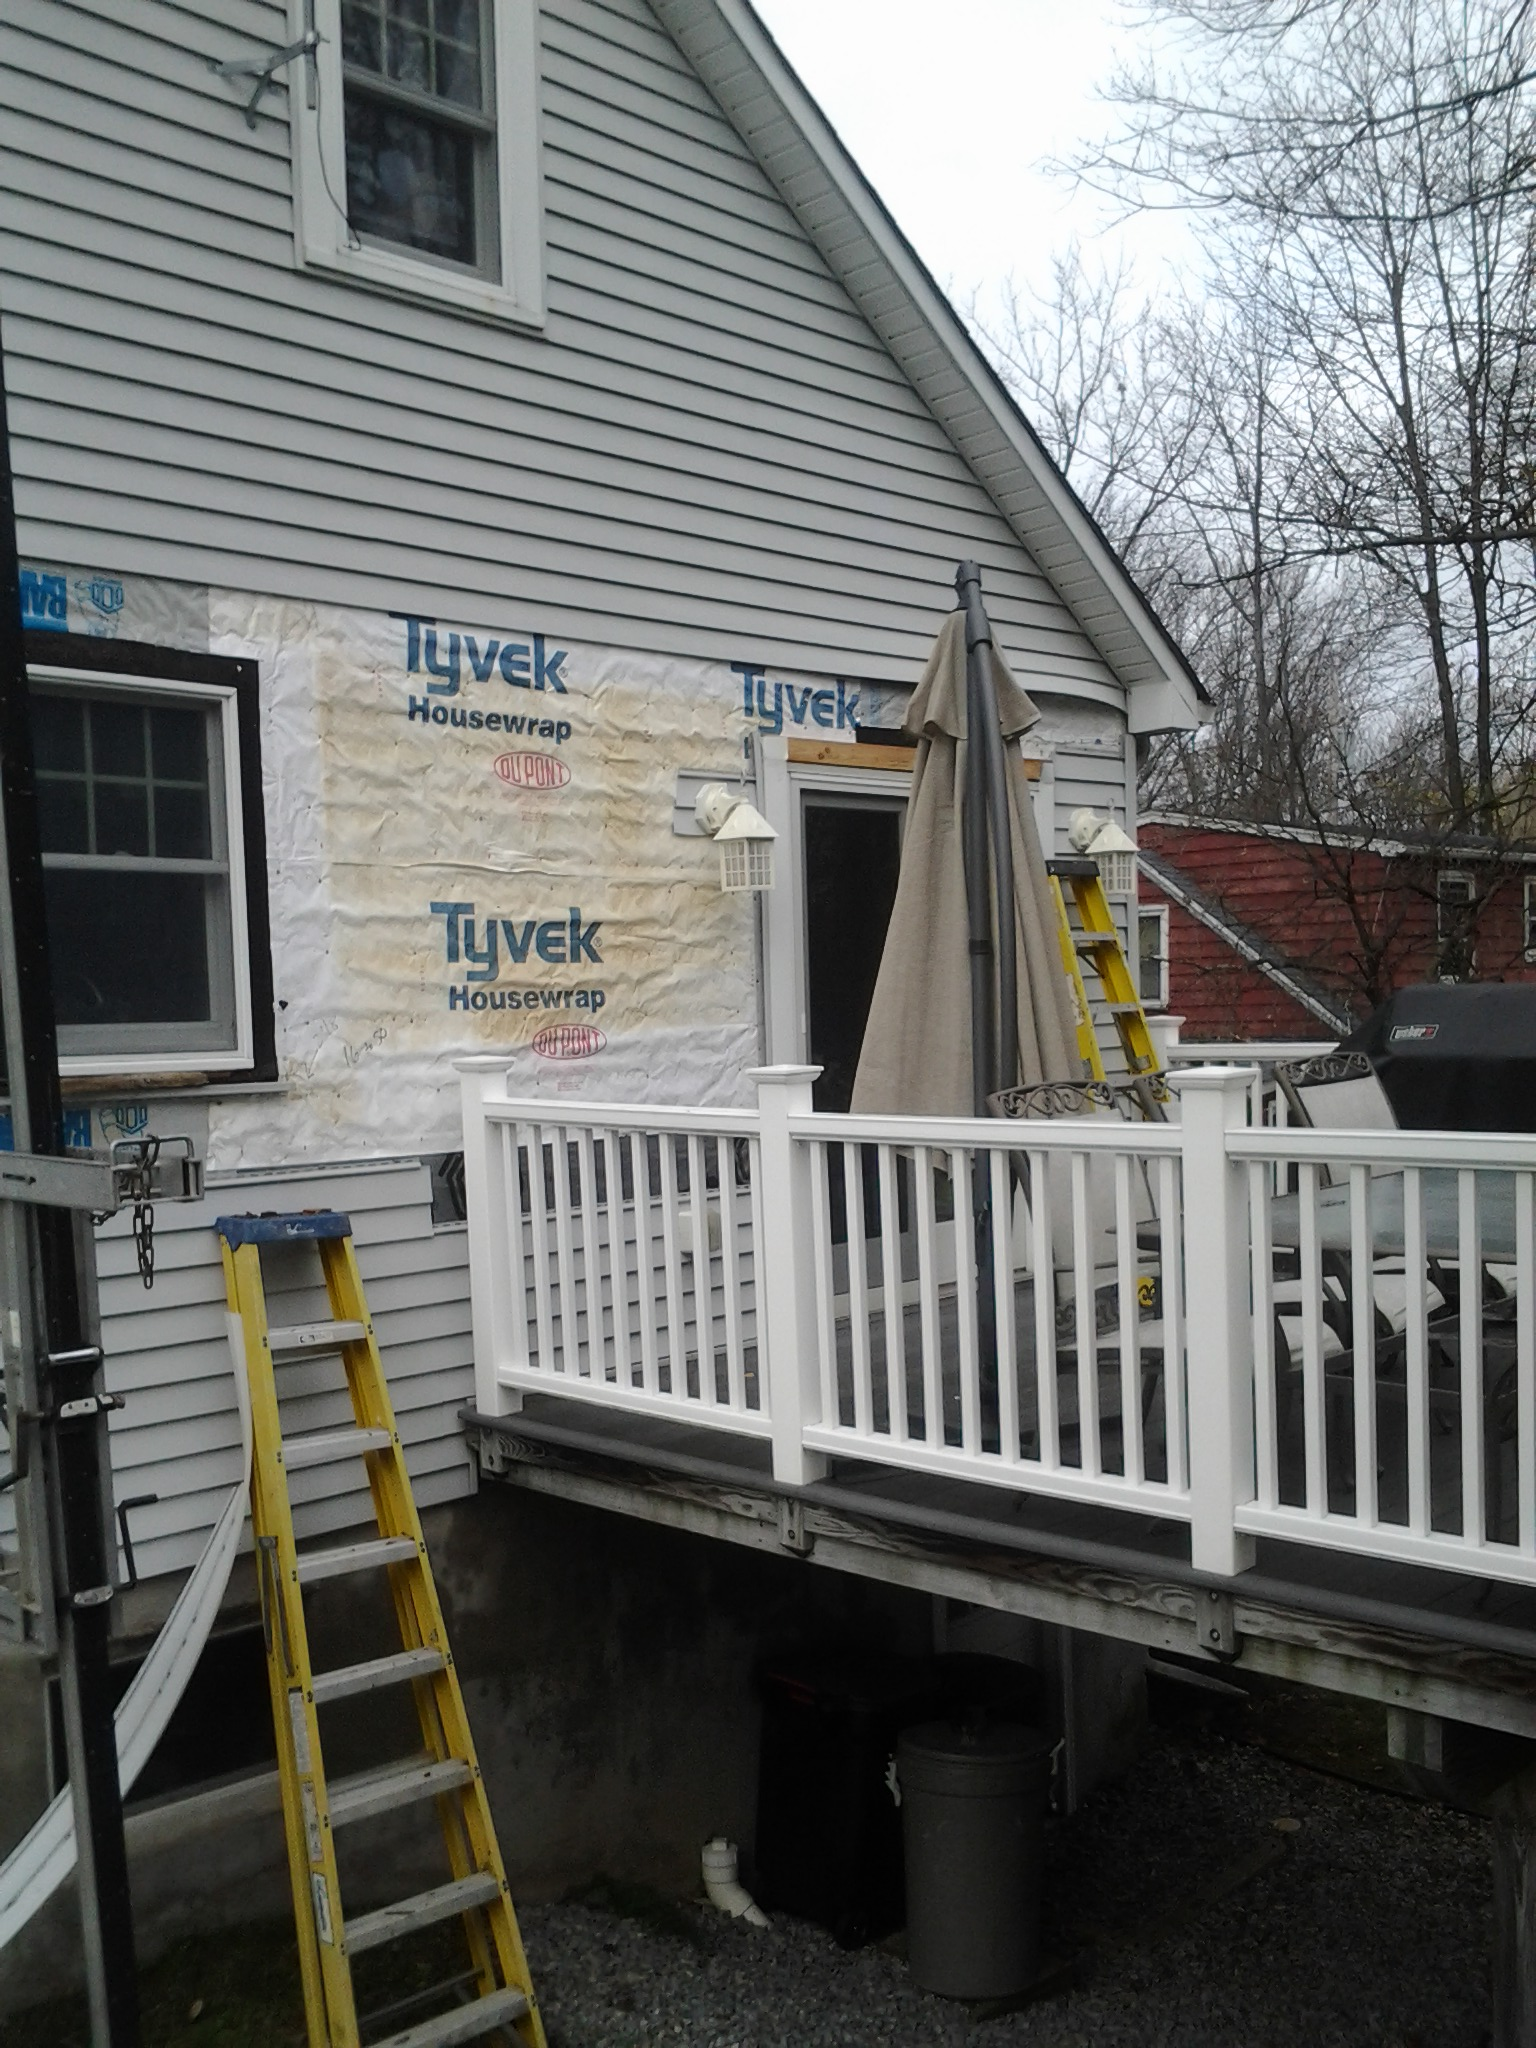 Housewrap Over Tar Paper? - Windows, Siding and Doors